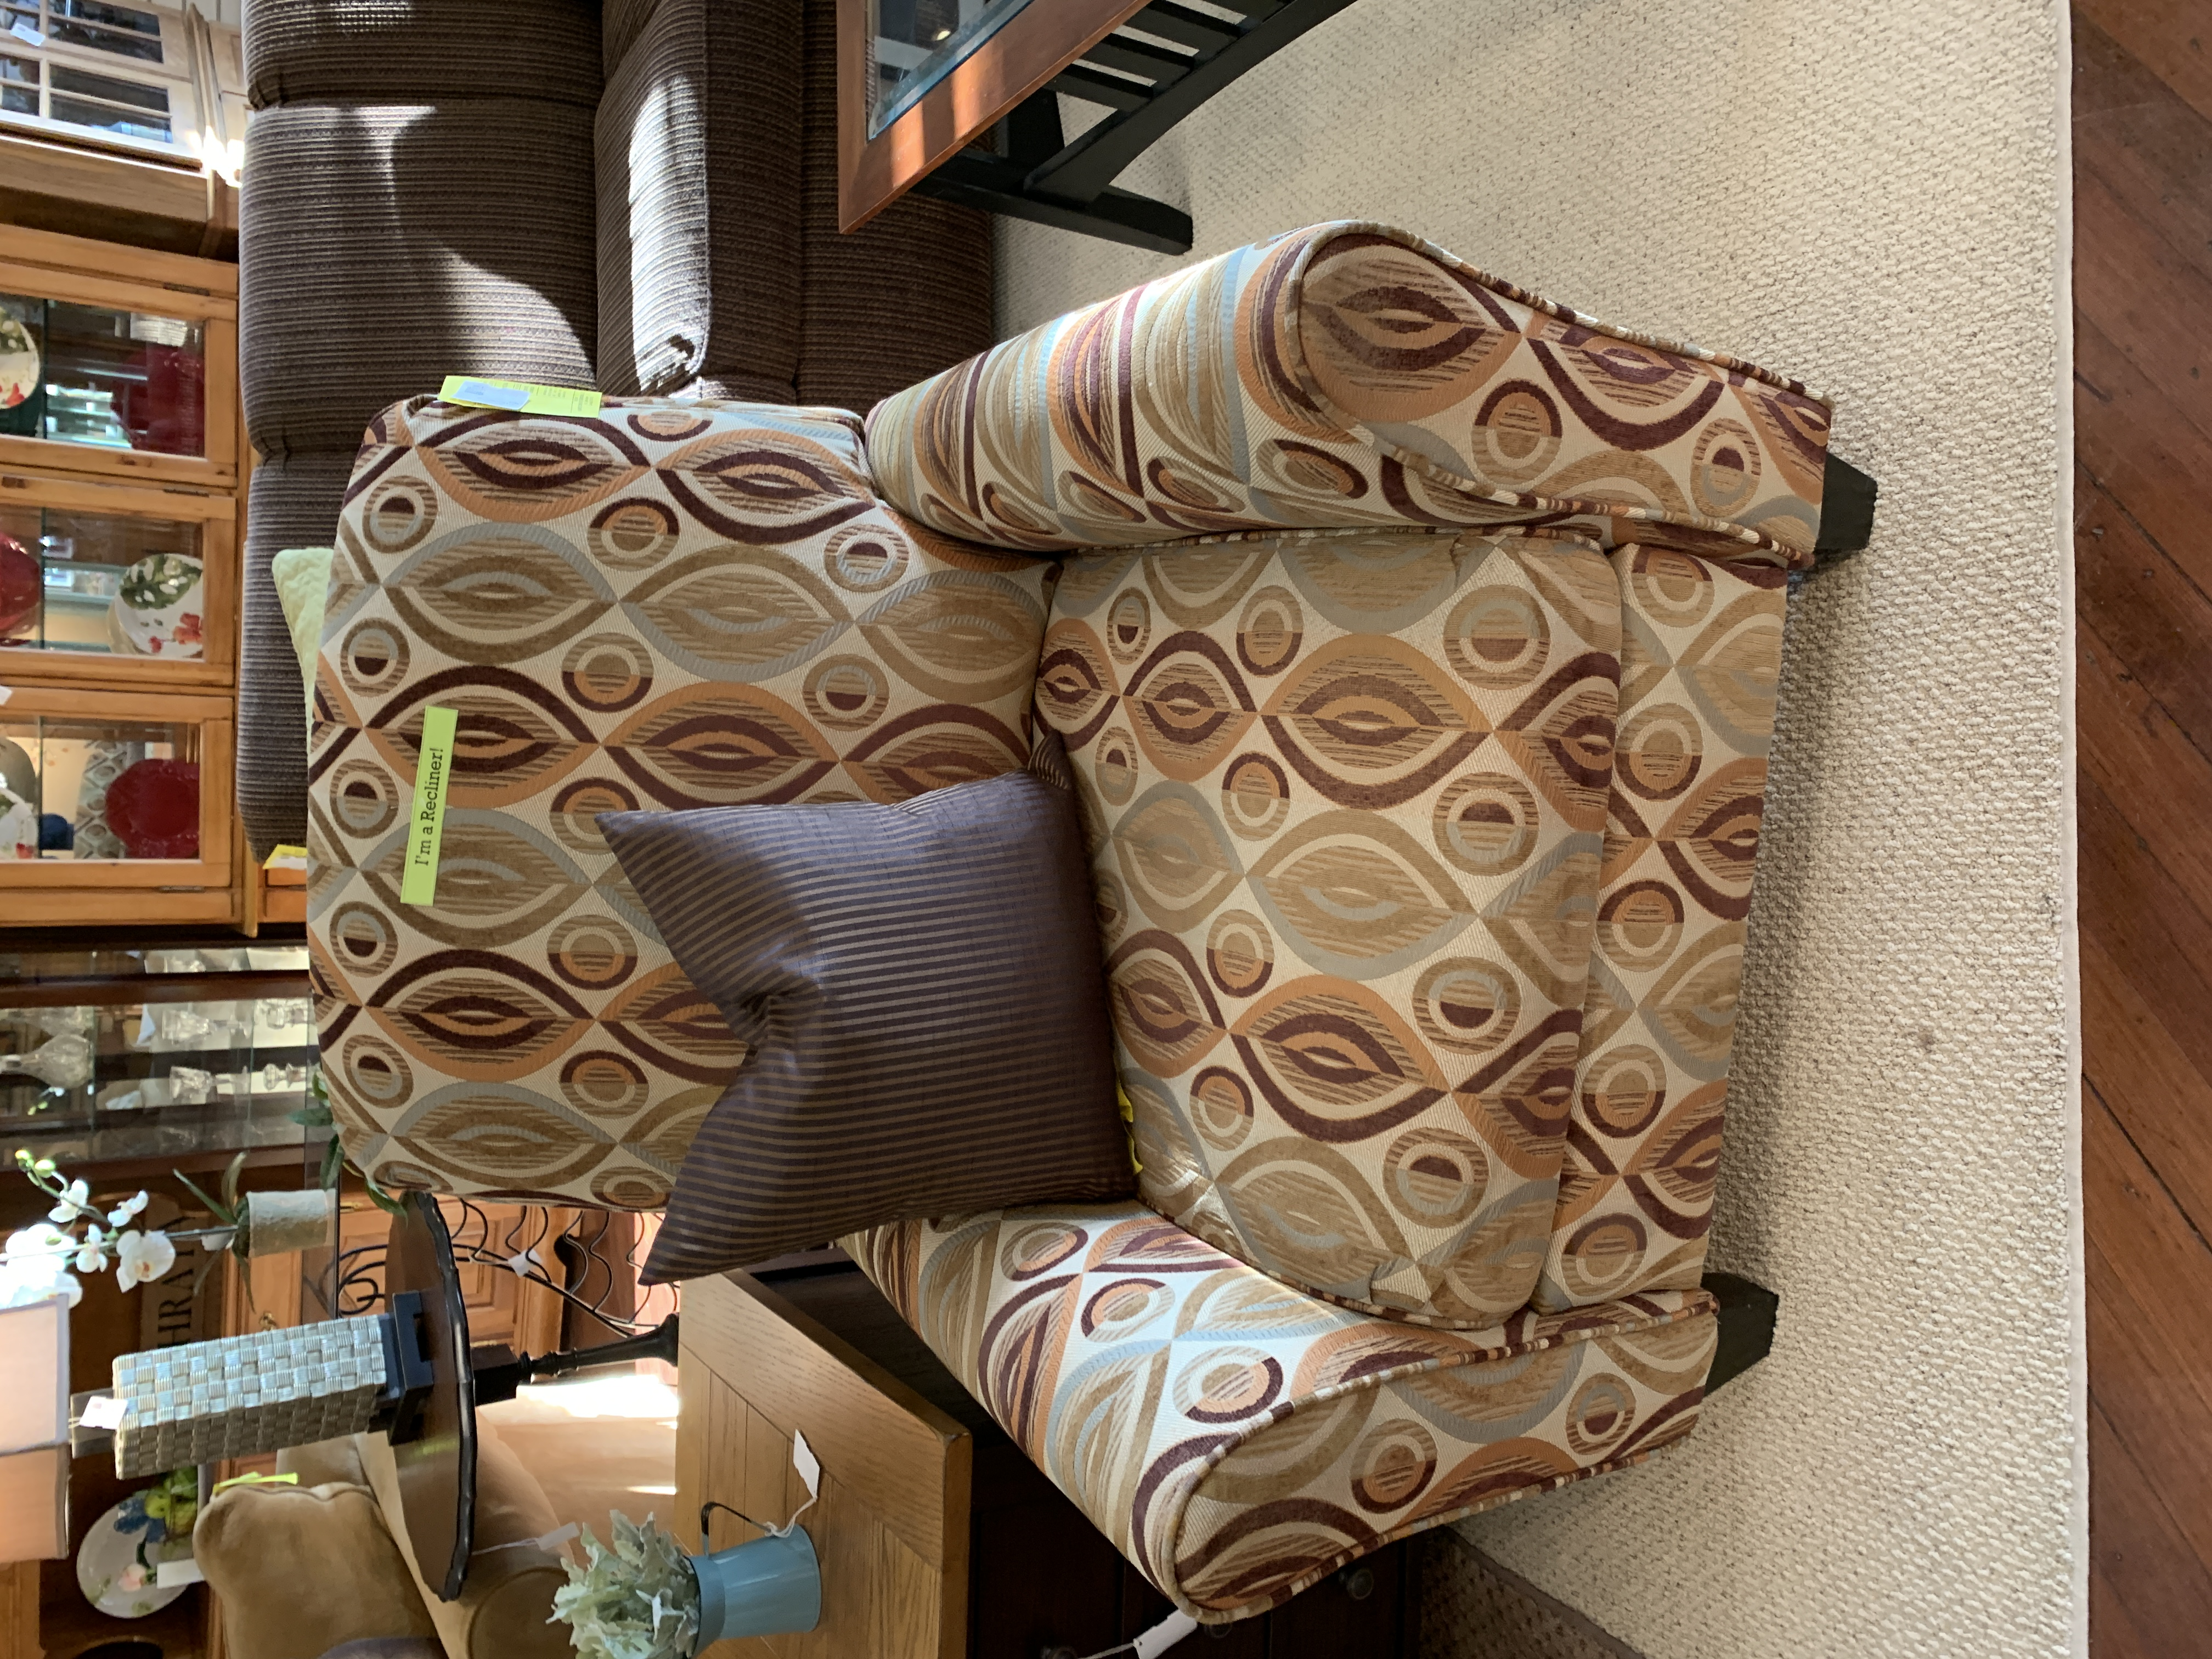 CREAM & BROWN PATTERN PUSHBACK RECLINER